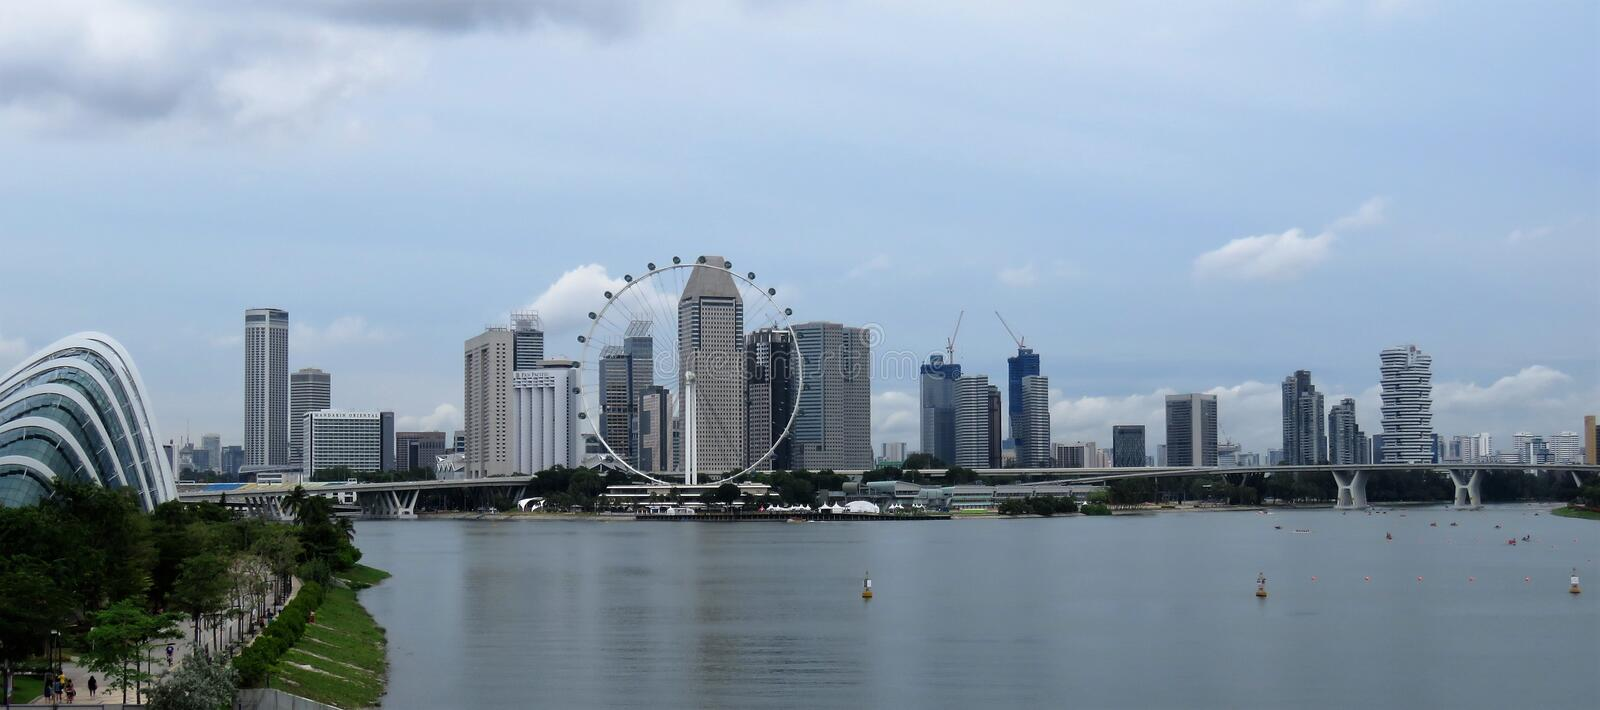 View of lagoon sea and buildings in Singapore stock photo